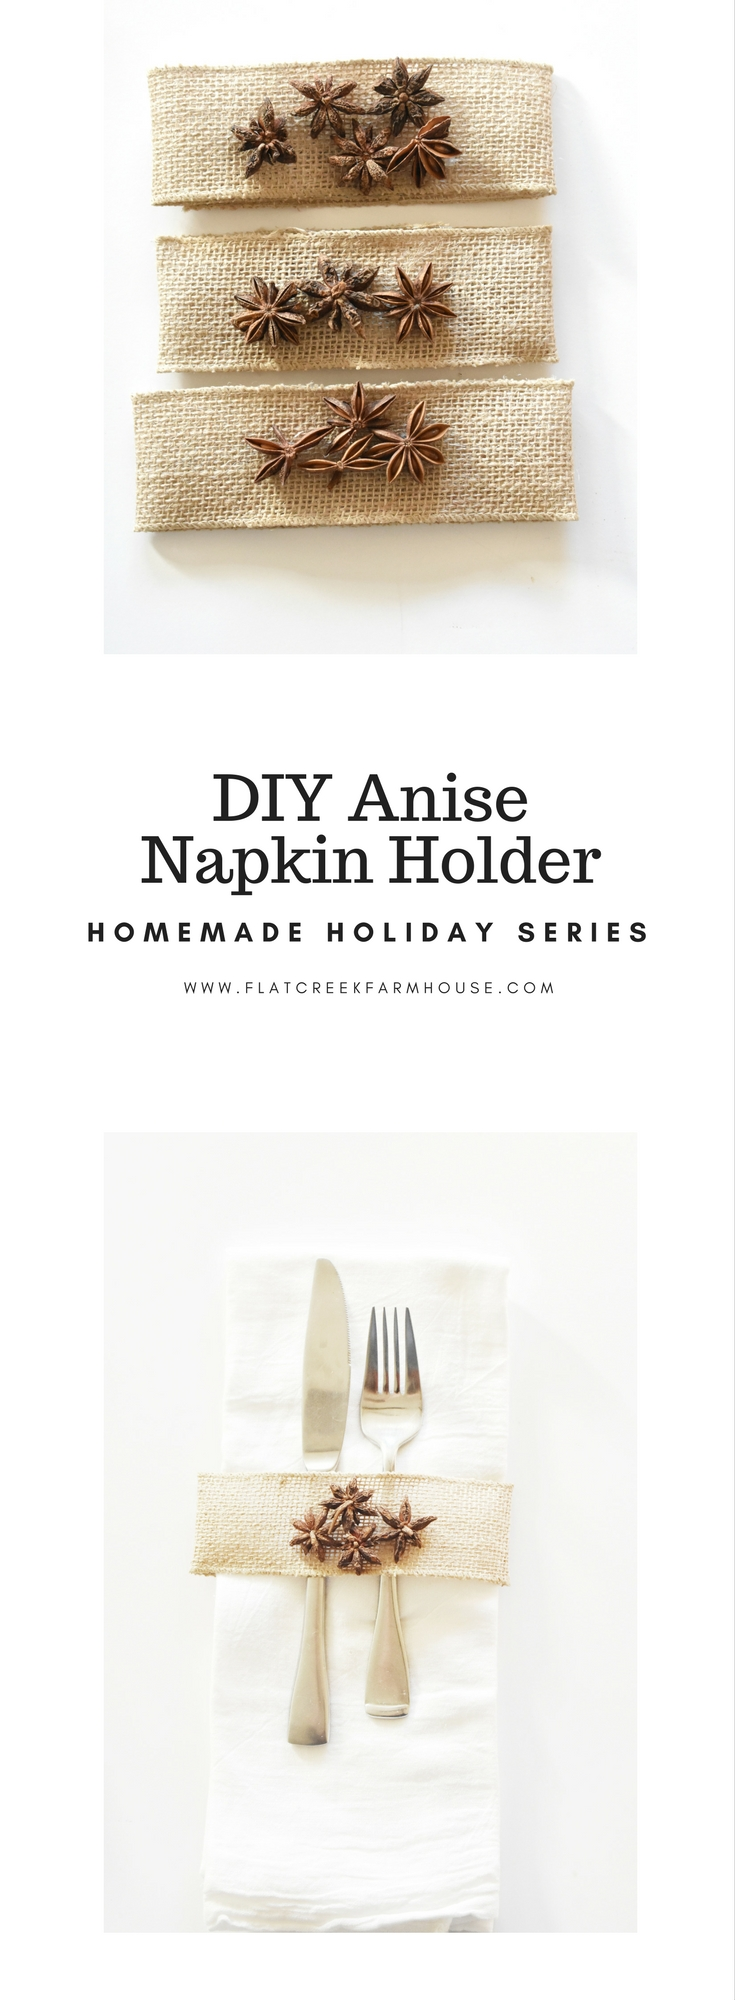 DIY Anise Napkin Holders for Thansgiving Holiday Table Setting. An earthy rustic woodsy theme table setting.